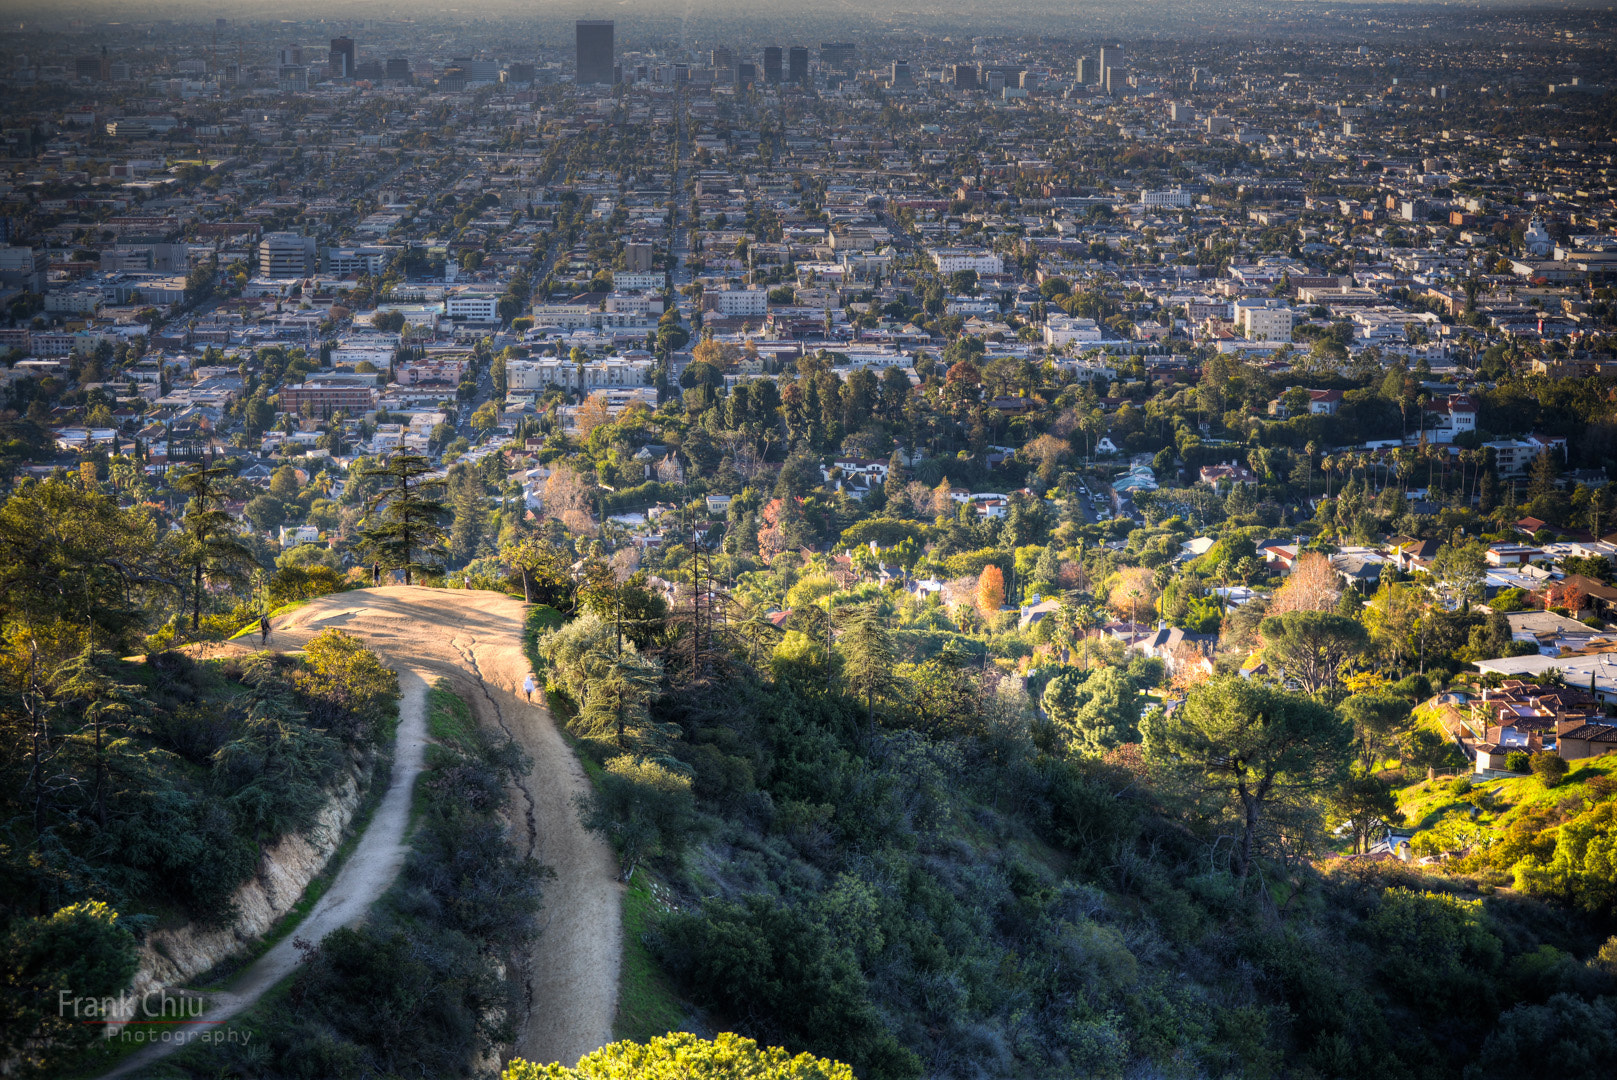 Photograph Los Angeles Hike by Frank Chiu on 500px